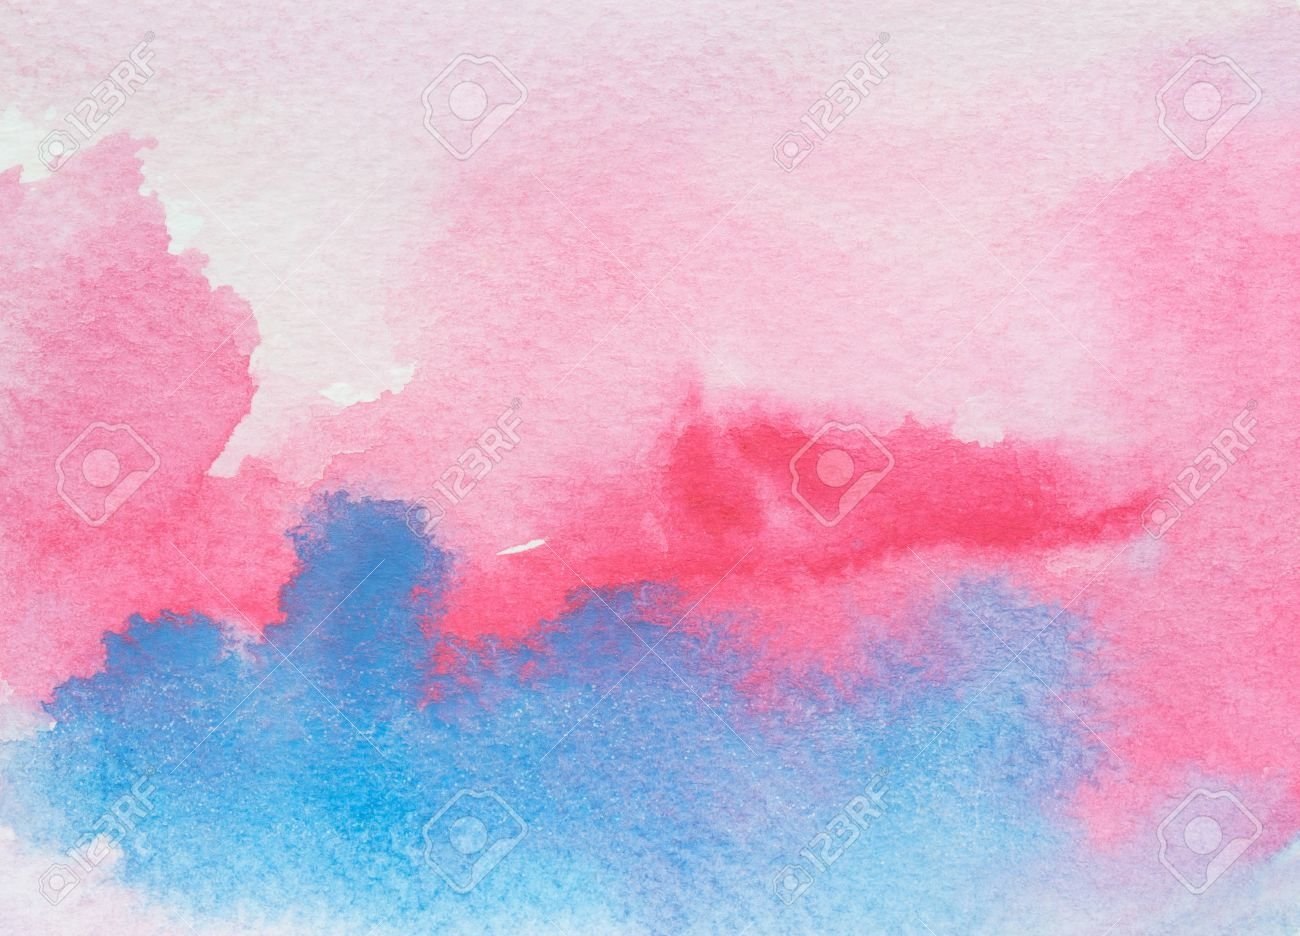 Watercolor Ombre Background Watercolor WashWatercolor Pink 1300x936